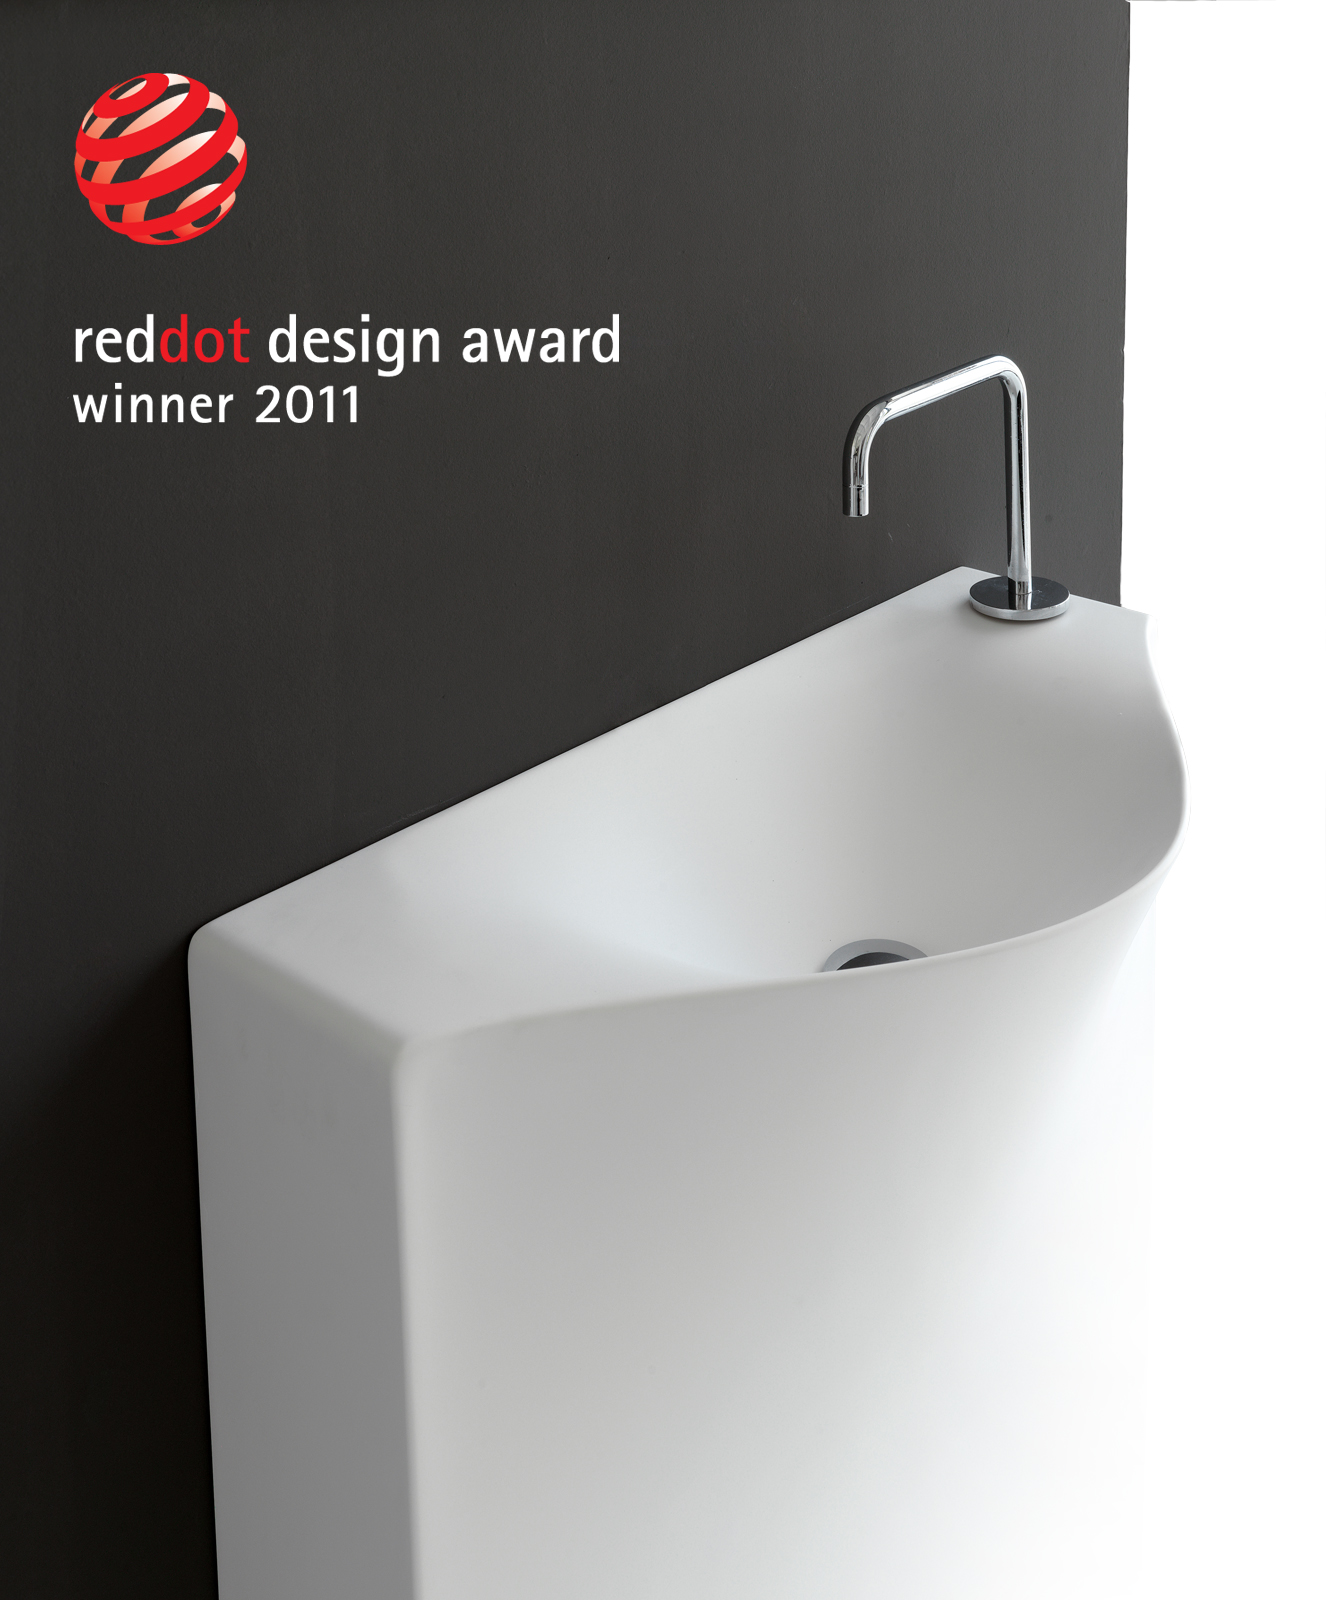 Red dot design award meneghello paolelli associati